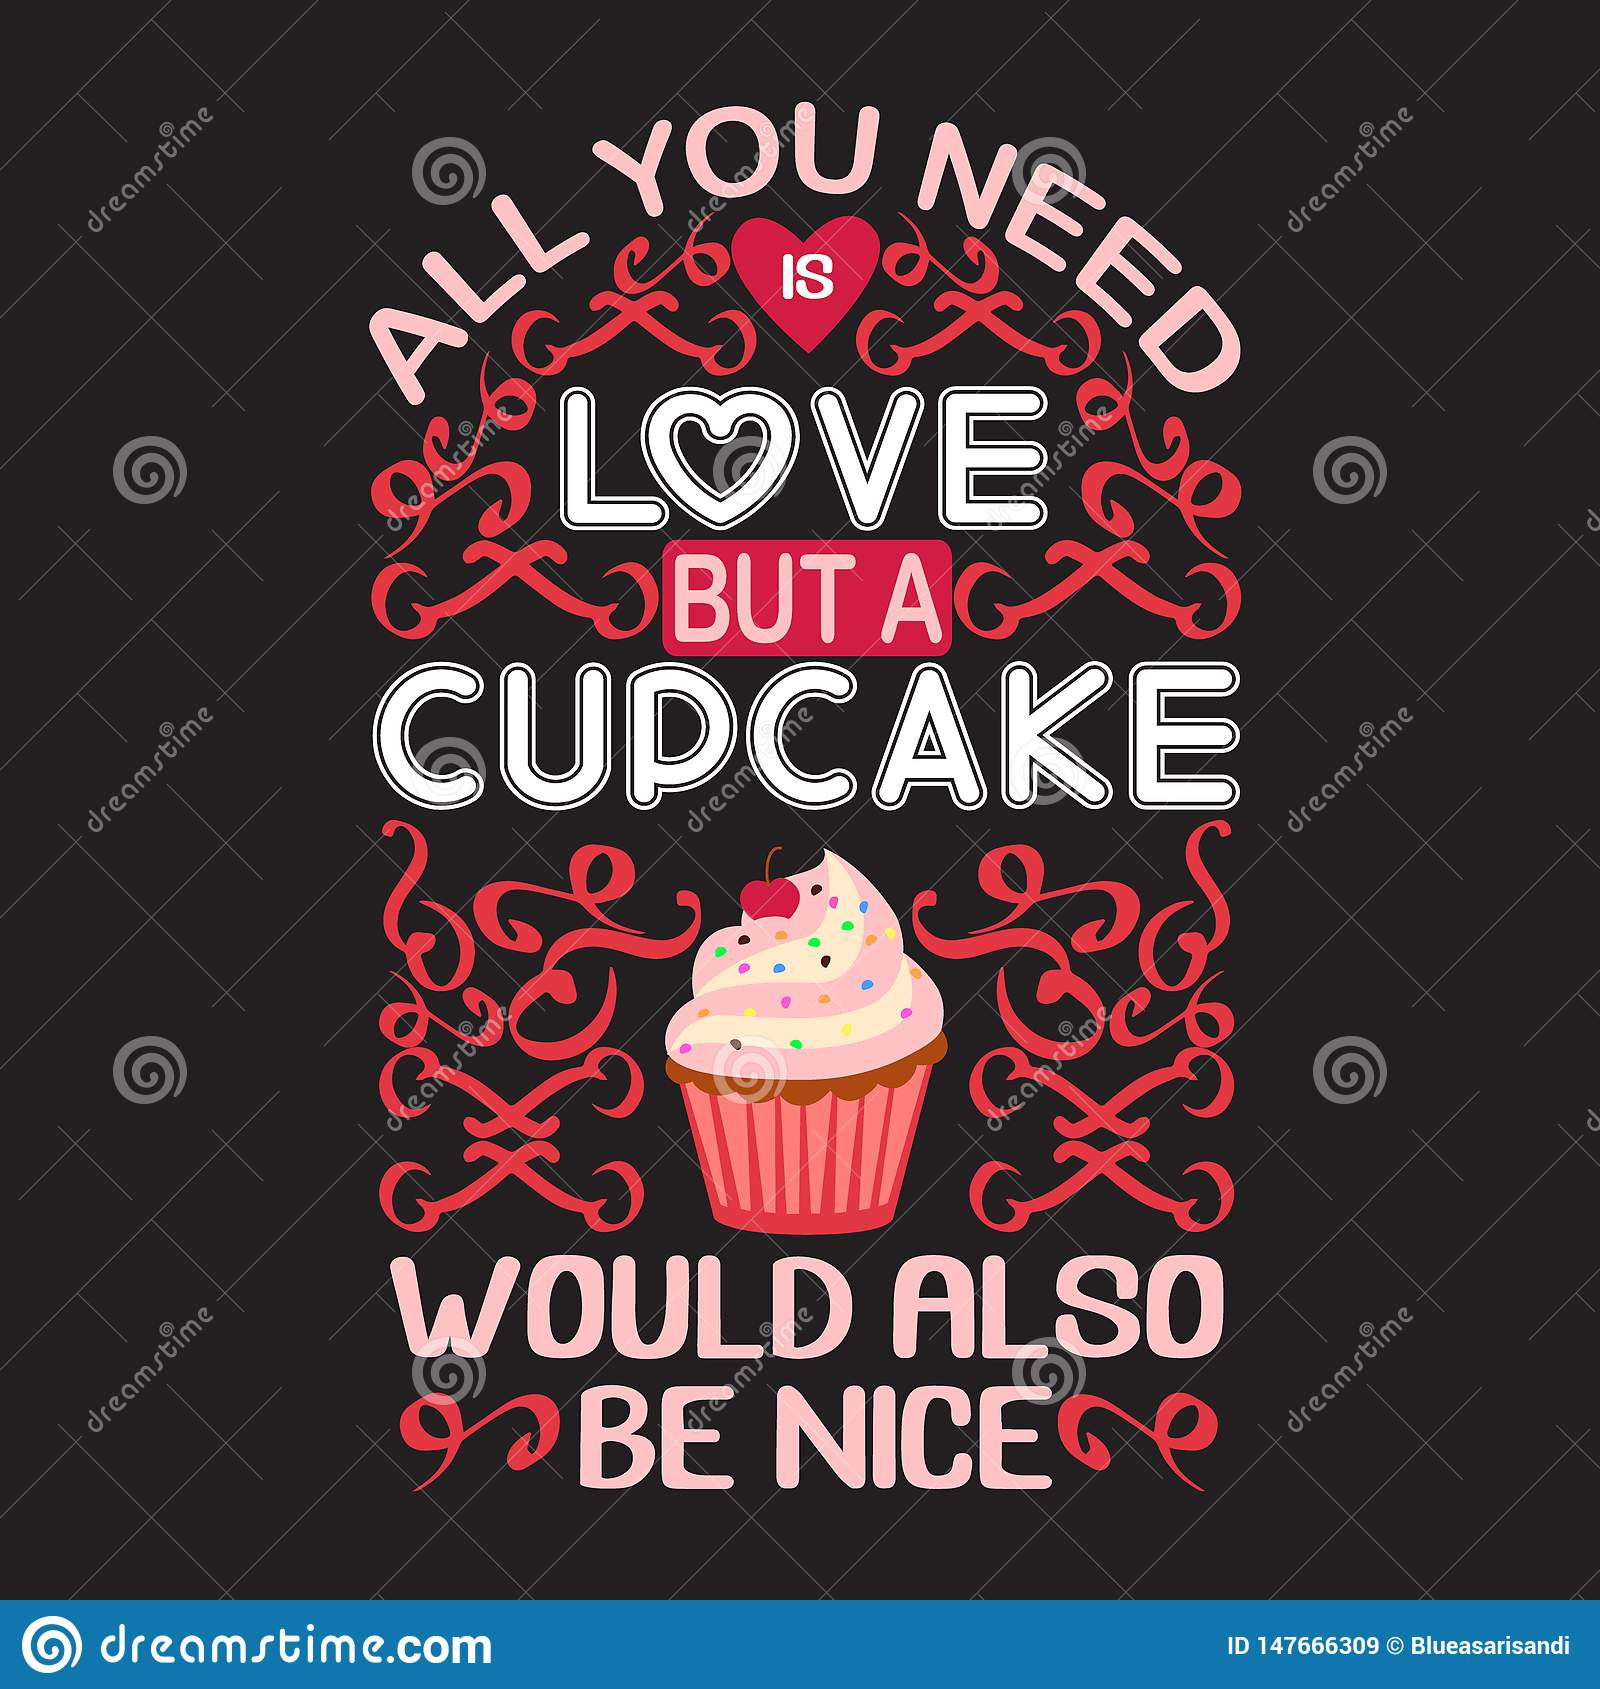 Cupcake Quote And Saying Good For Print Collections Stock Illustration Illustration Of Bakery Healthy 147666309